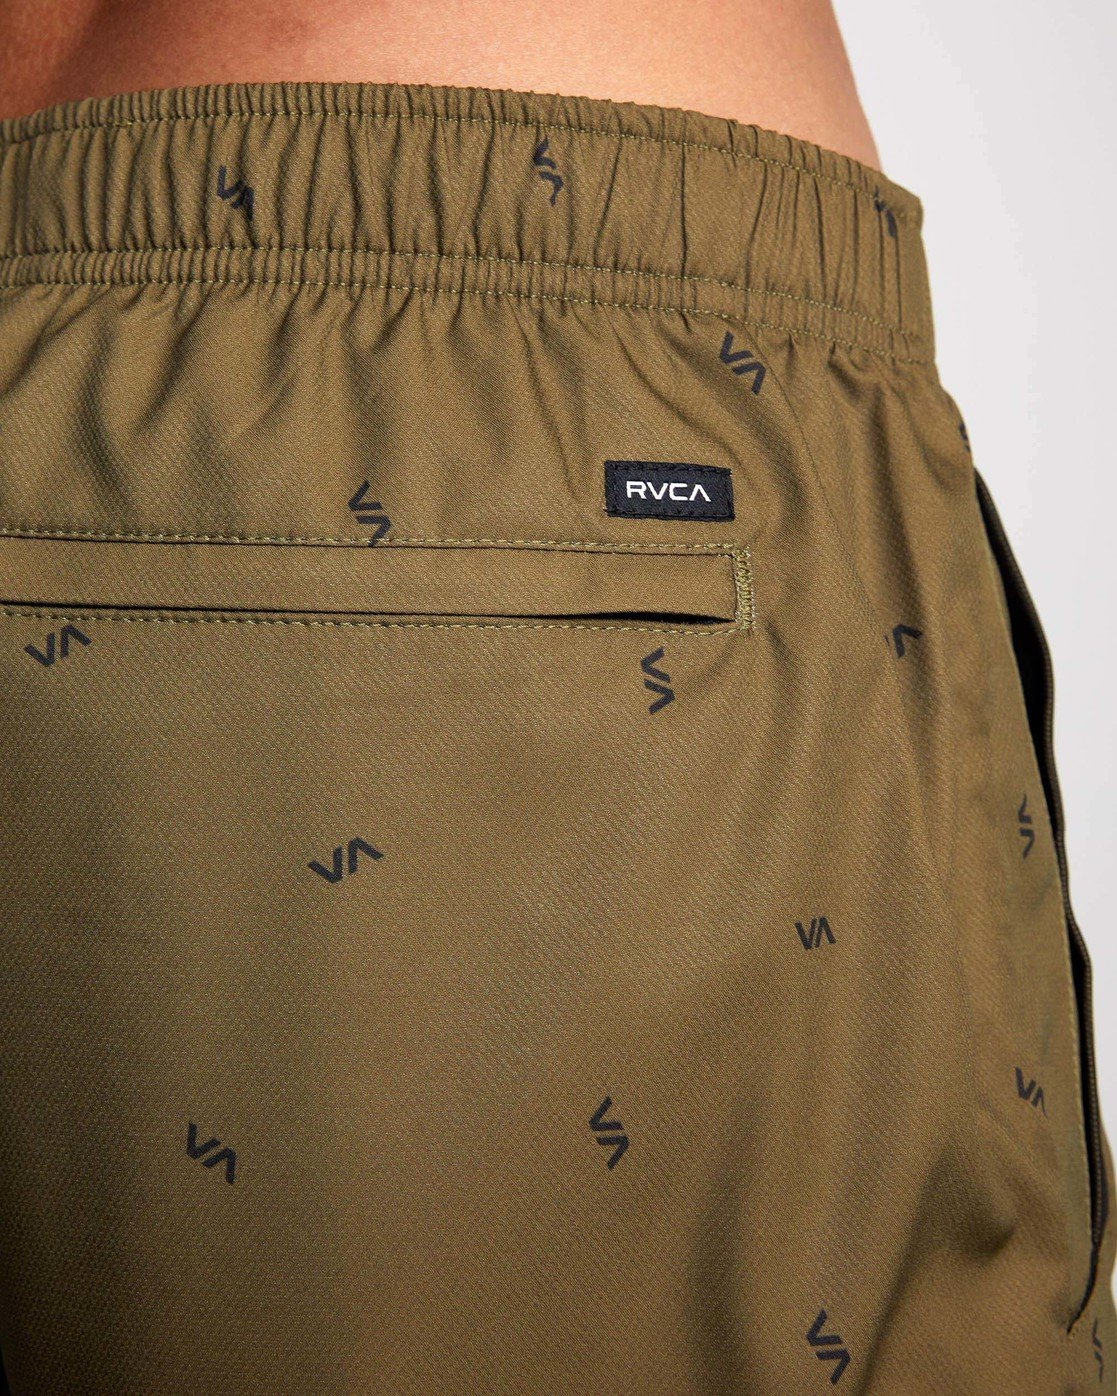 "11 YOGGER IV ATHLETIC SHORTS 17"" Brown V2091YGR RVCA"